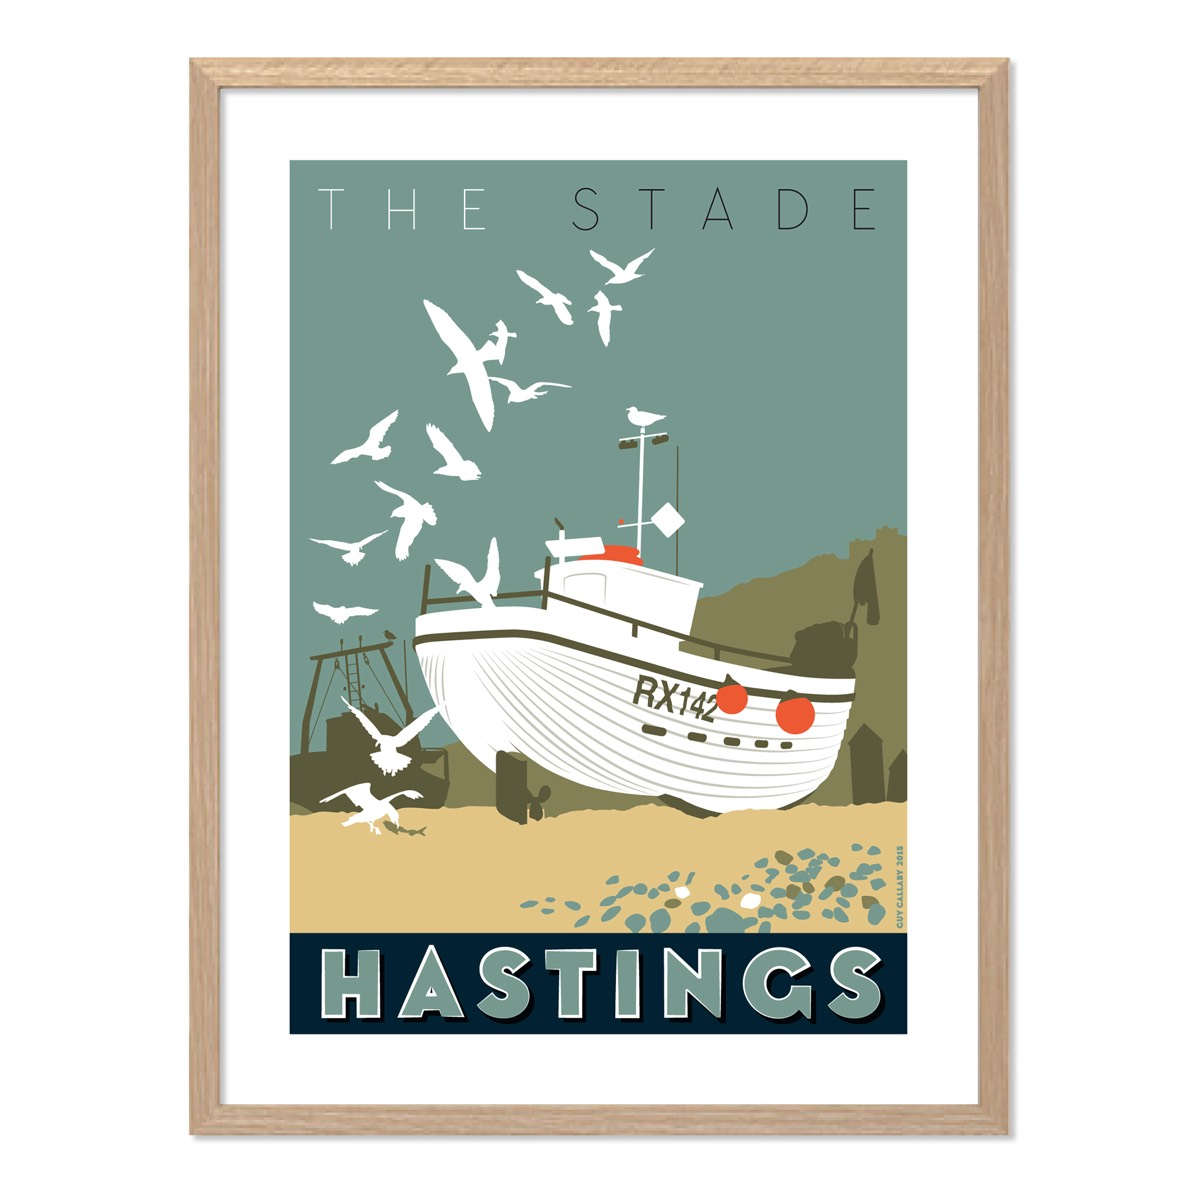 Print of The Stade white fishing boat, Hastings